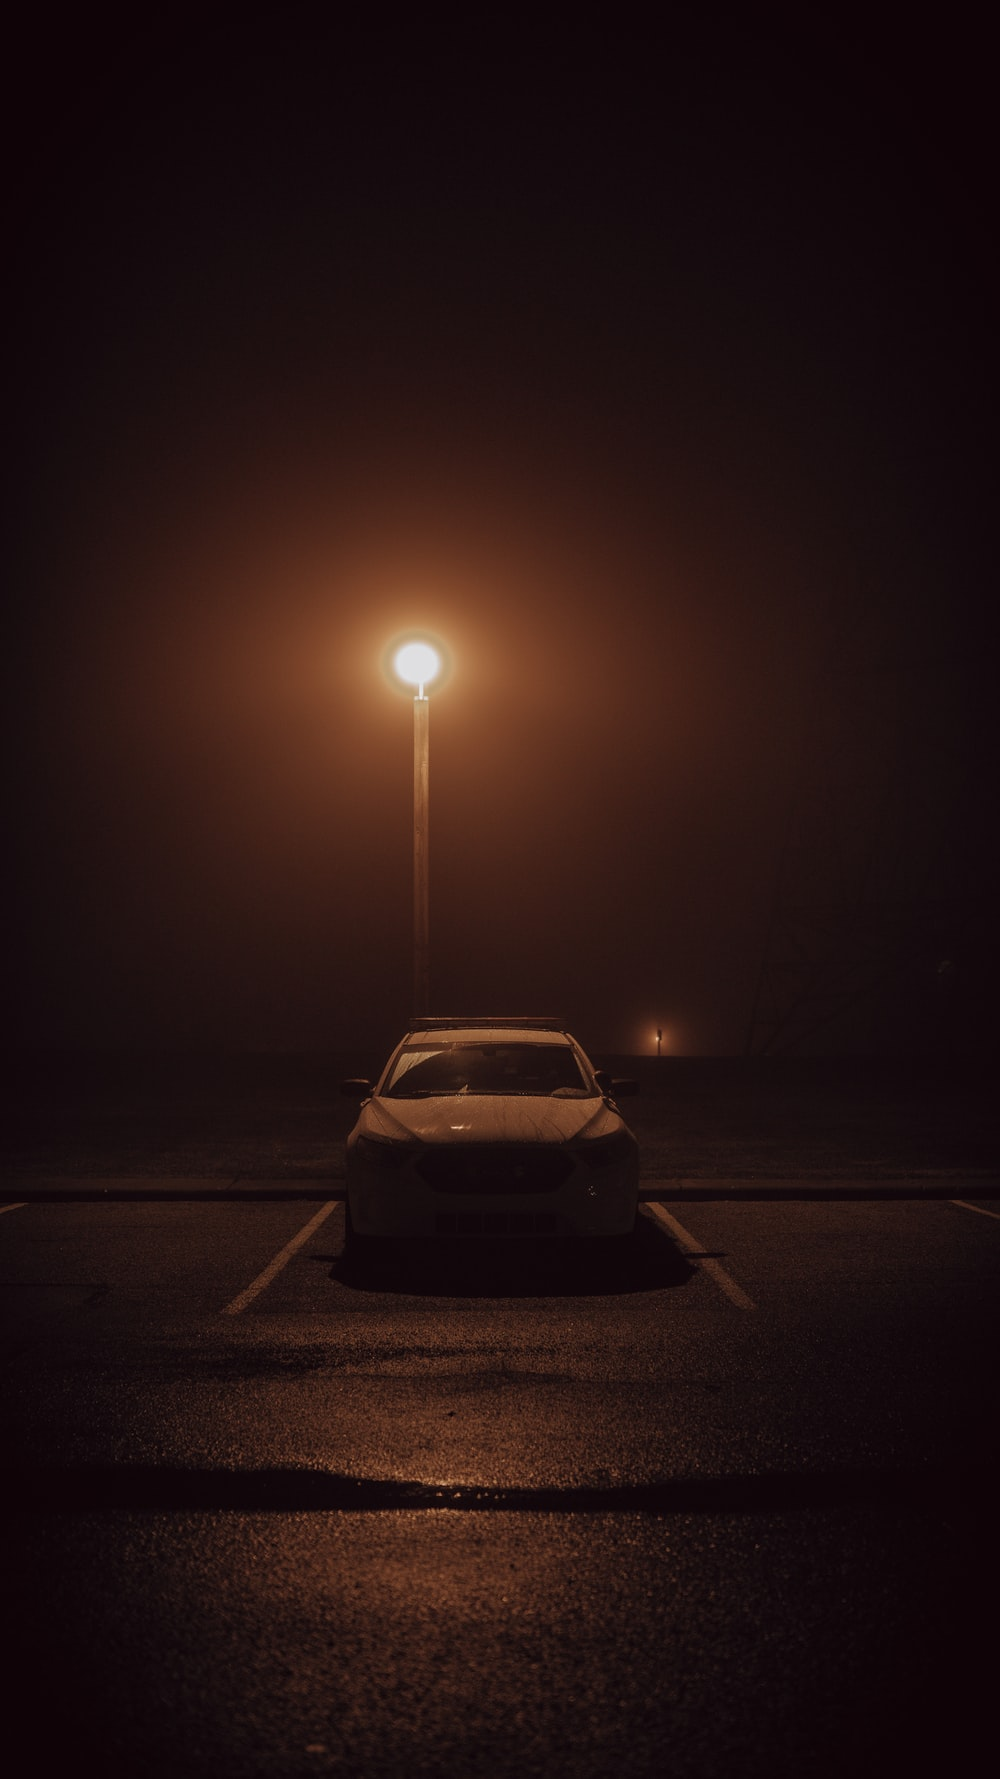 white car on road during night time